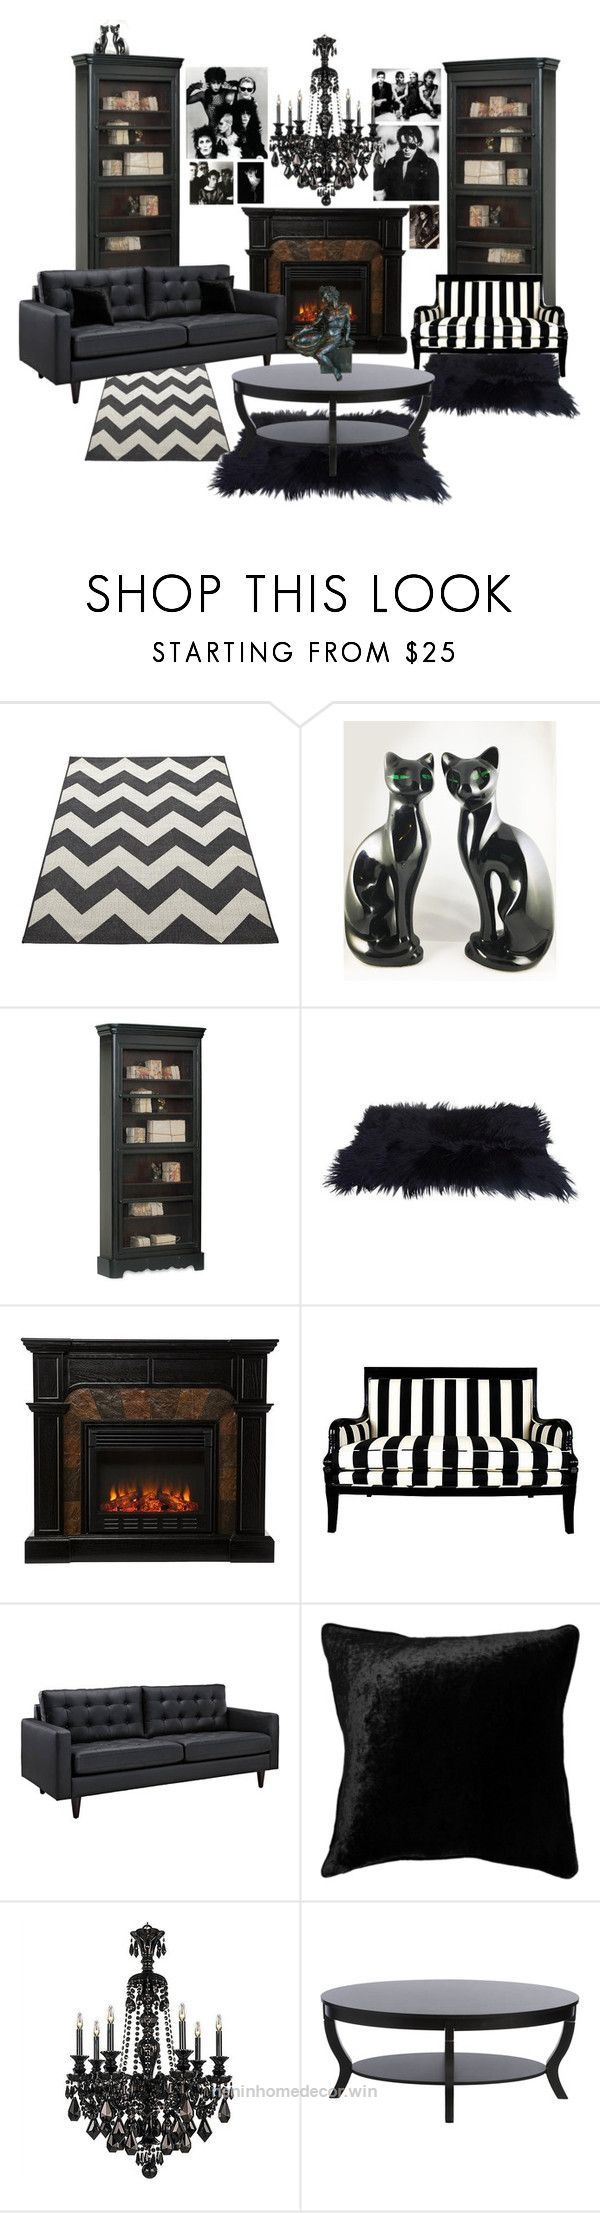 "Adorable ""Gothic Living Room"" by mistyghosts ❤ liked on Polyvore featuring interior, interiors, interior design, home, home decor, interior decorating, Home Decorators Collection, Squarefeathers, .."